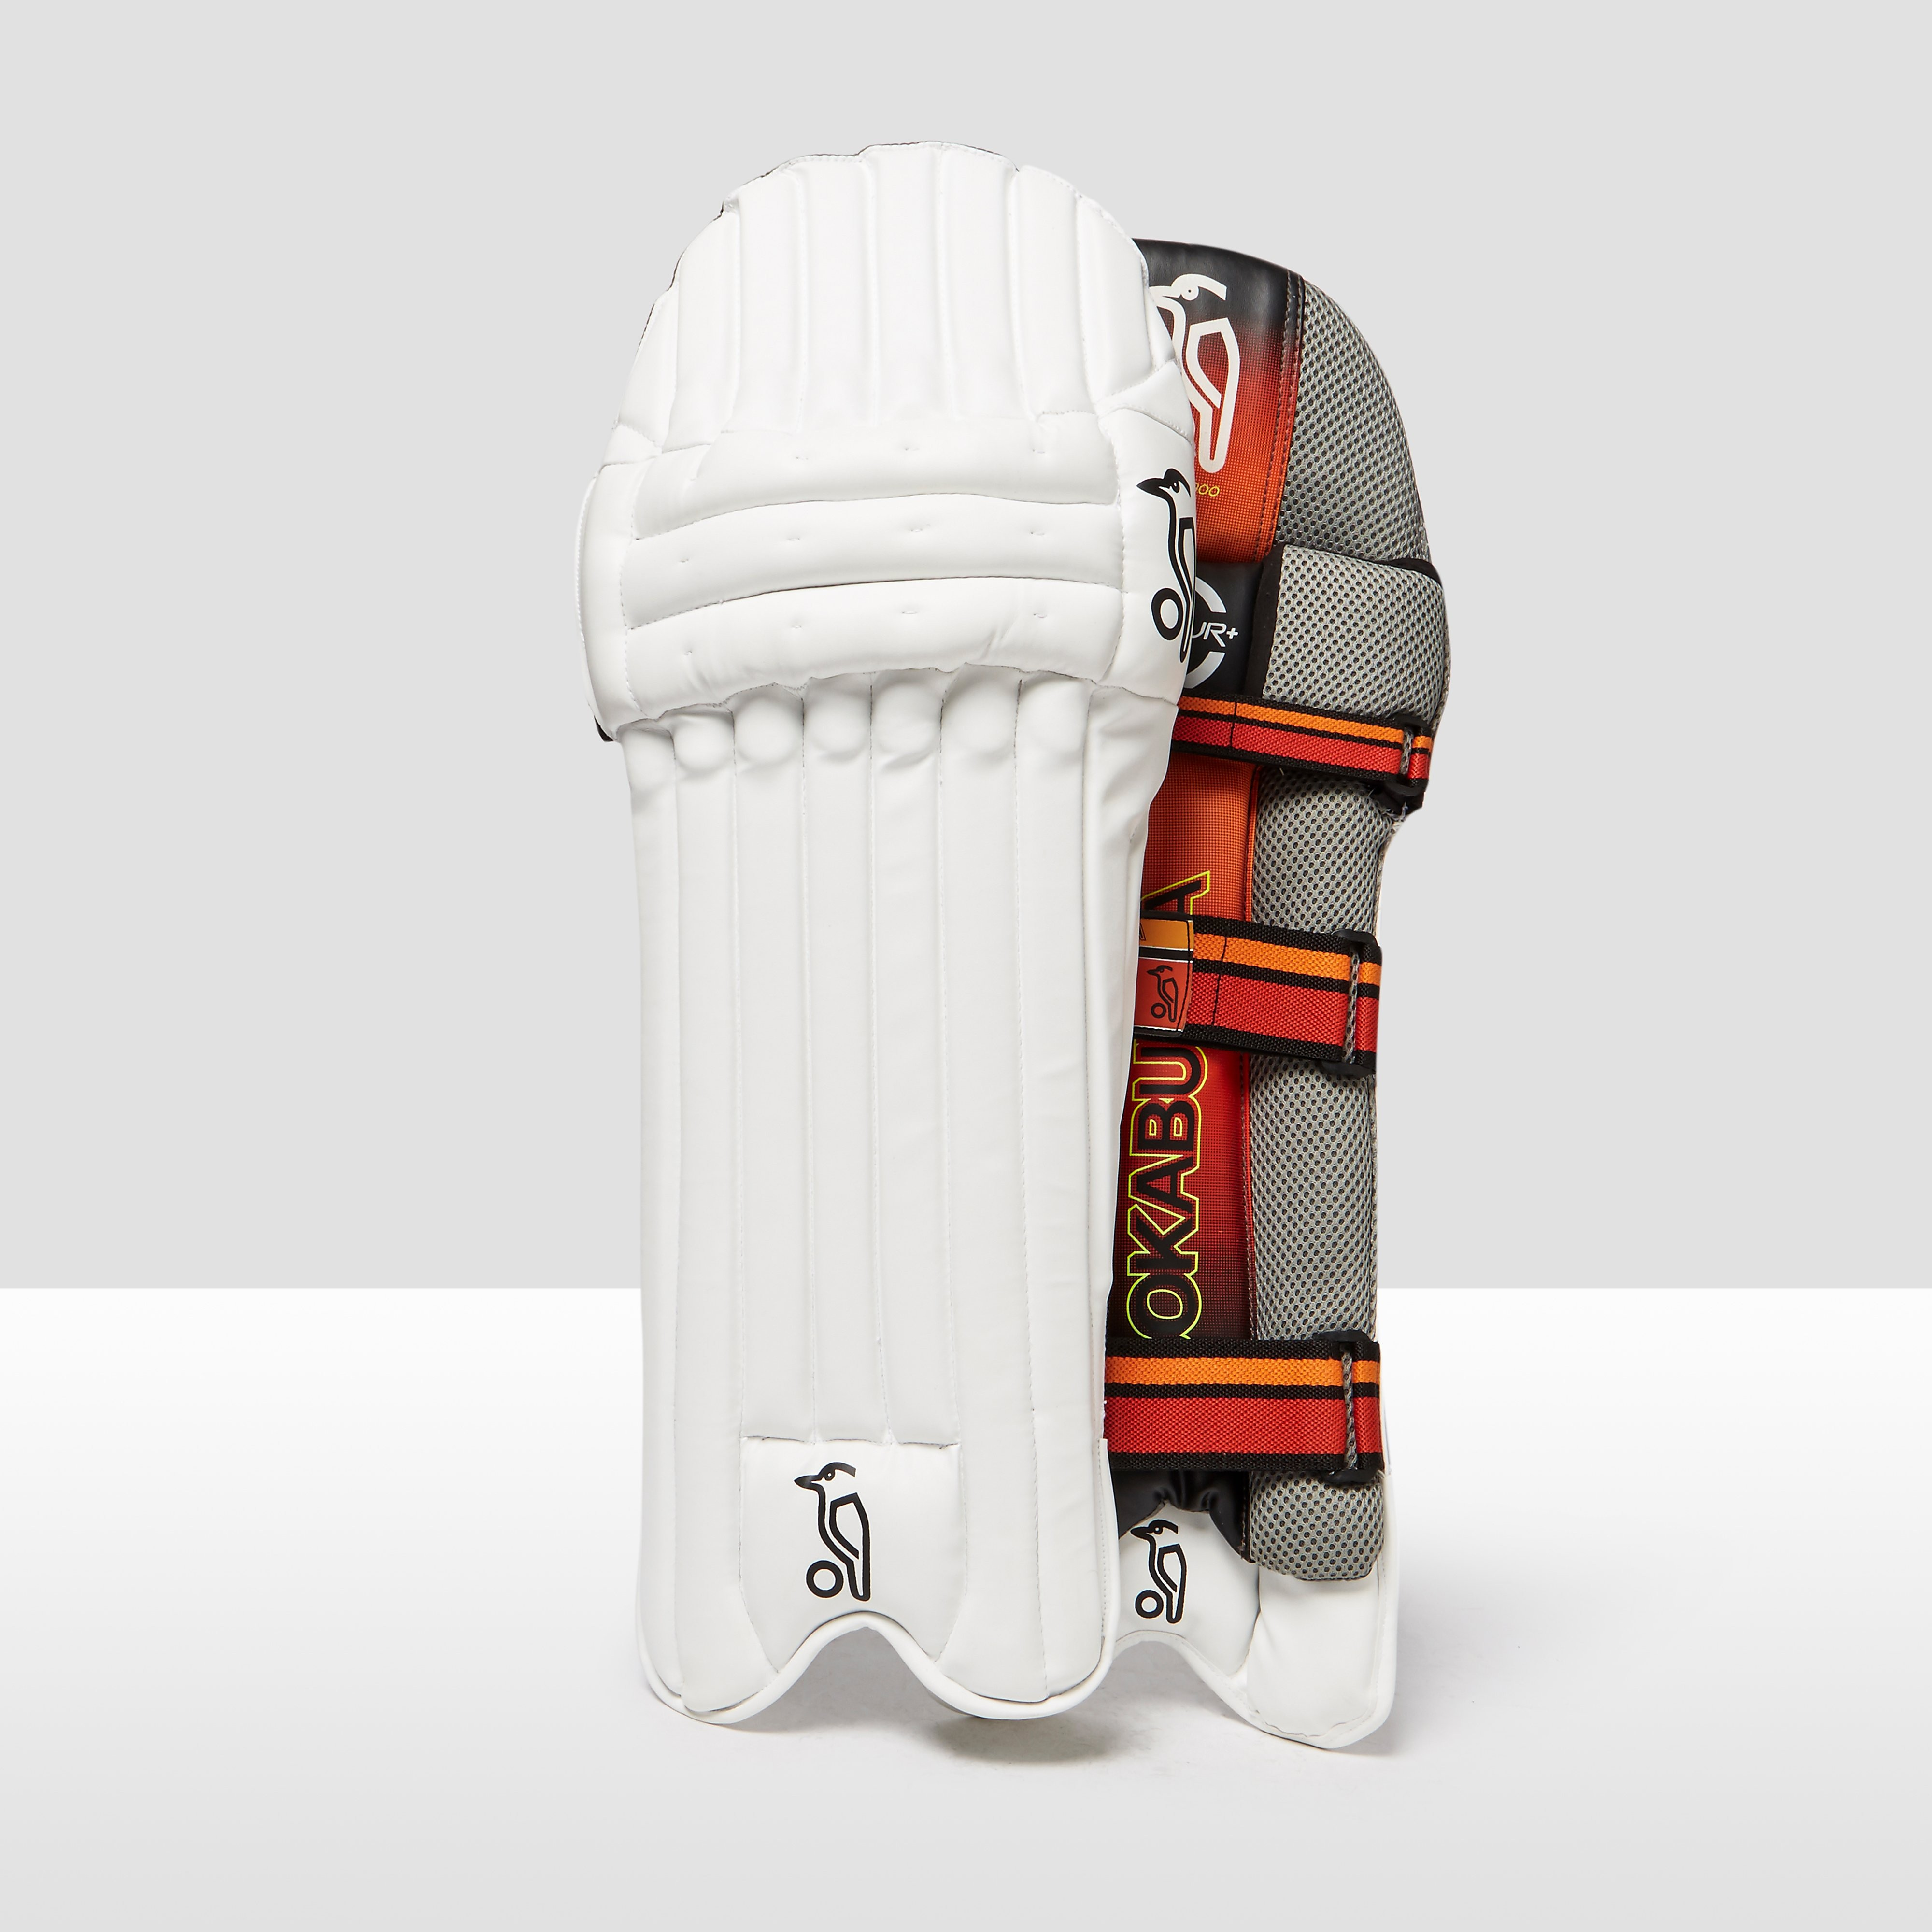 Kookaburra BLAZE 900 JUNior Batting Pads